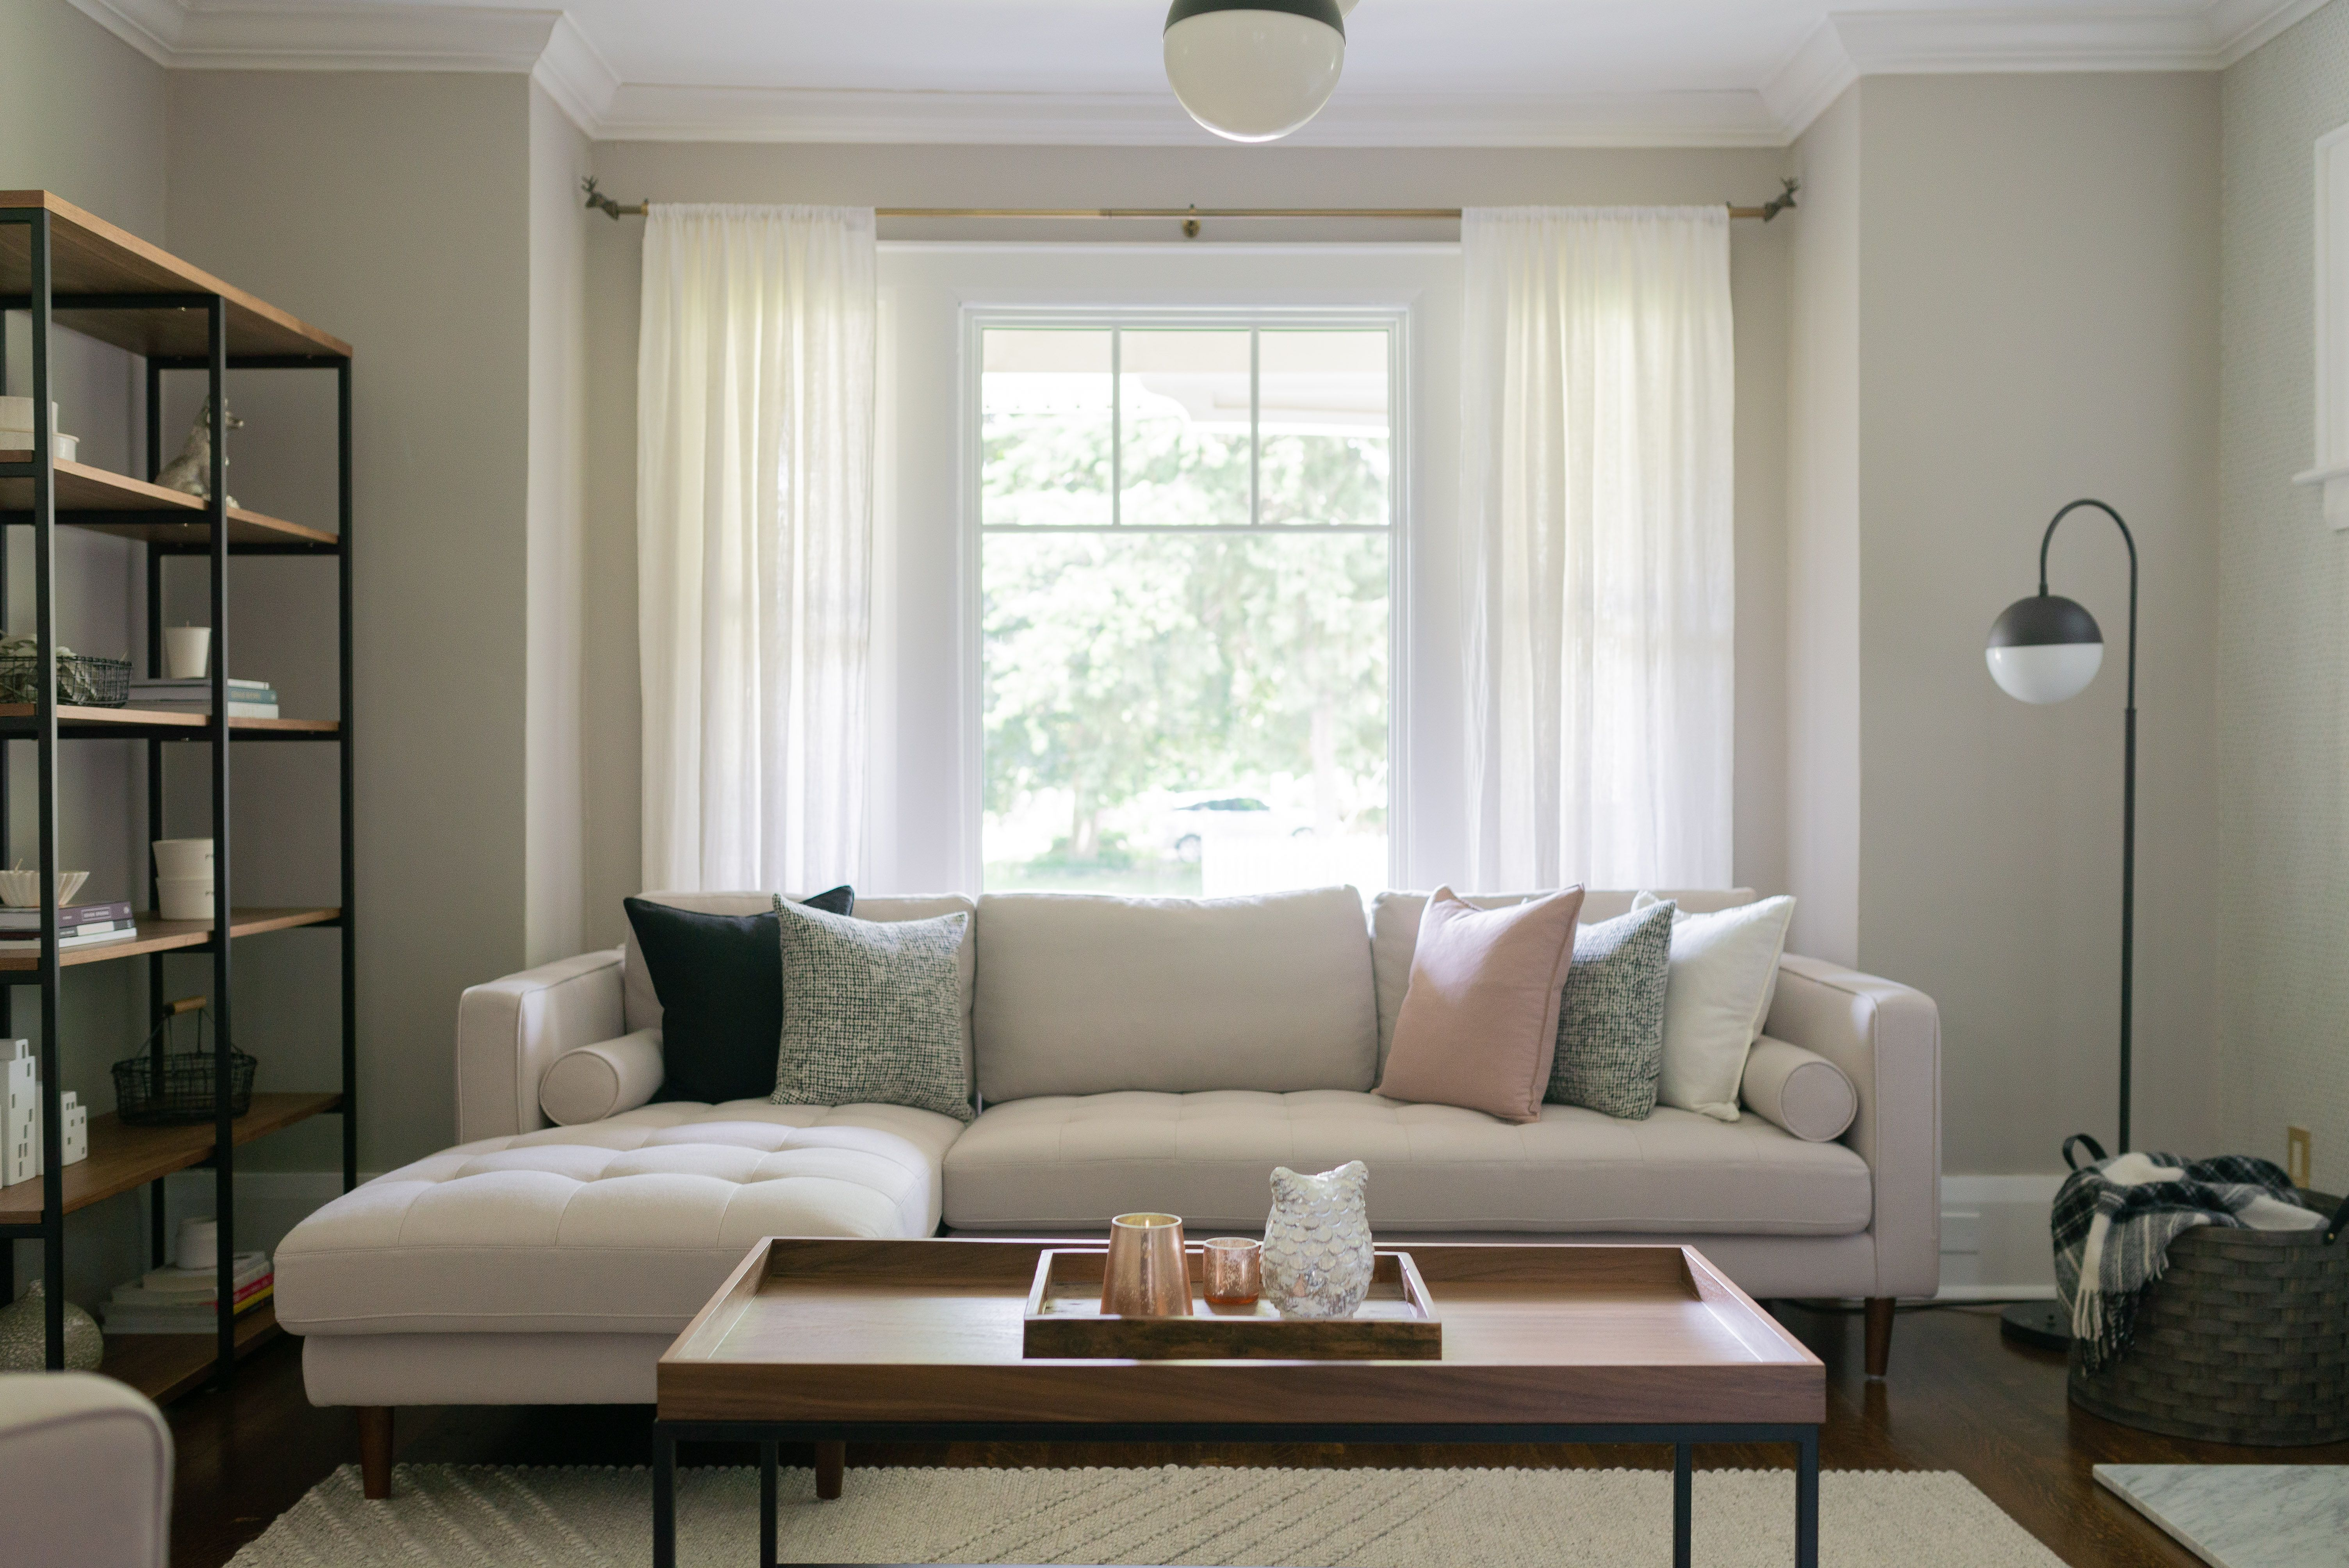 How to Make Mismatched Decor Feel Cohesive Living room